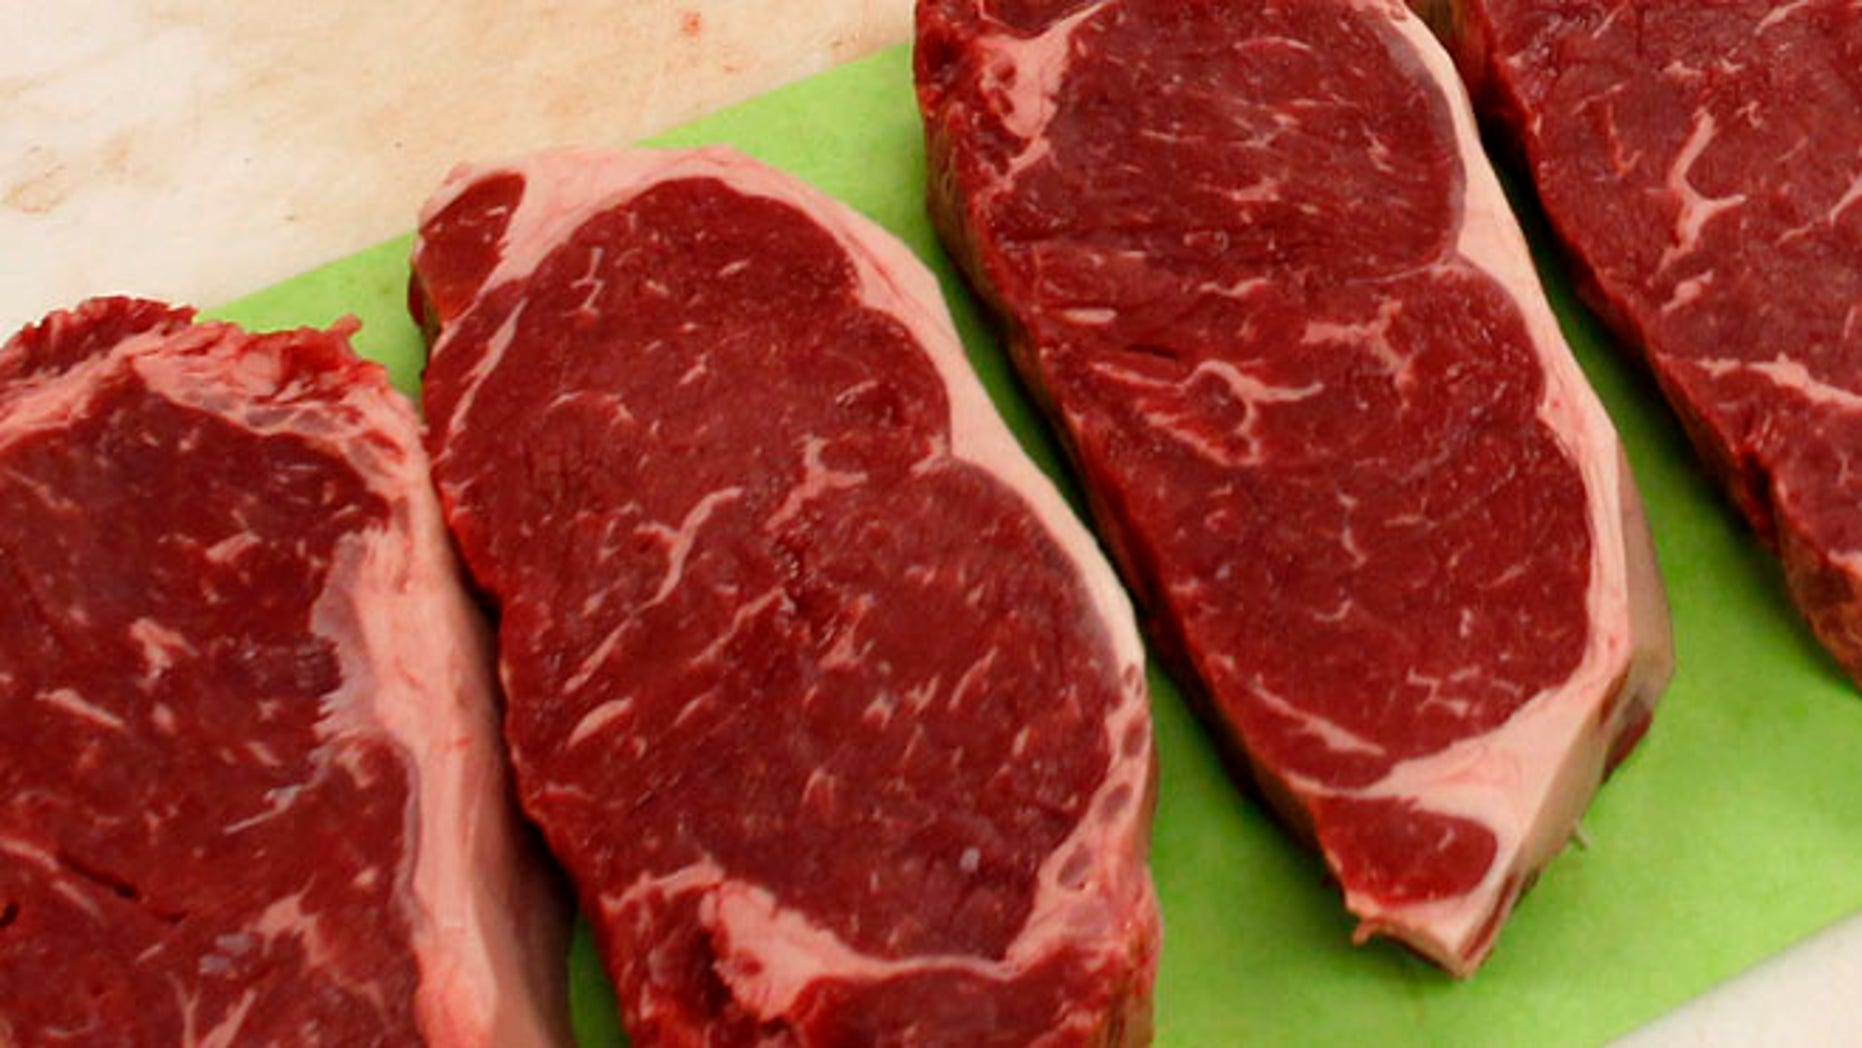 April 25, 2012: Strip steaks sit on the butchers table.